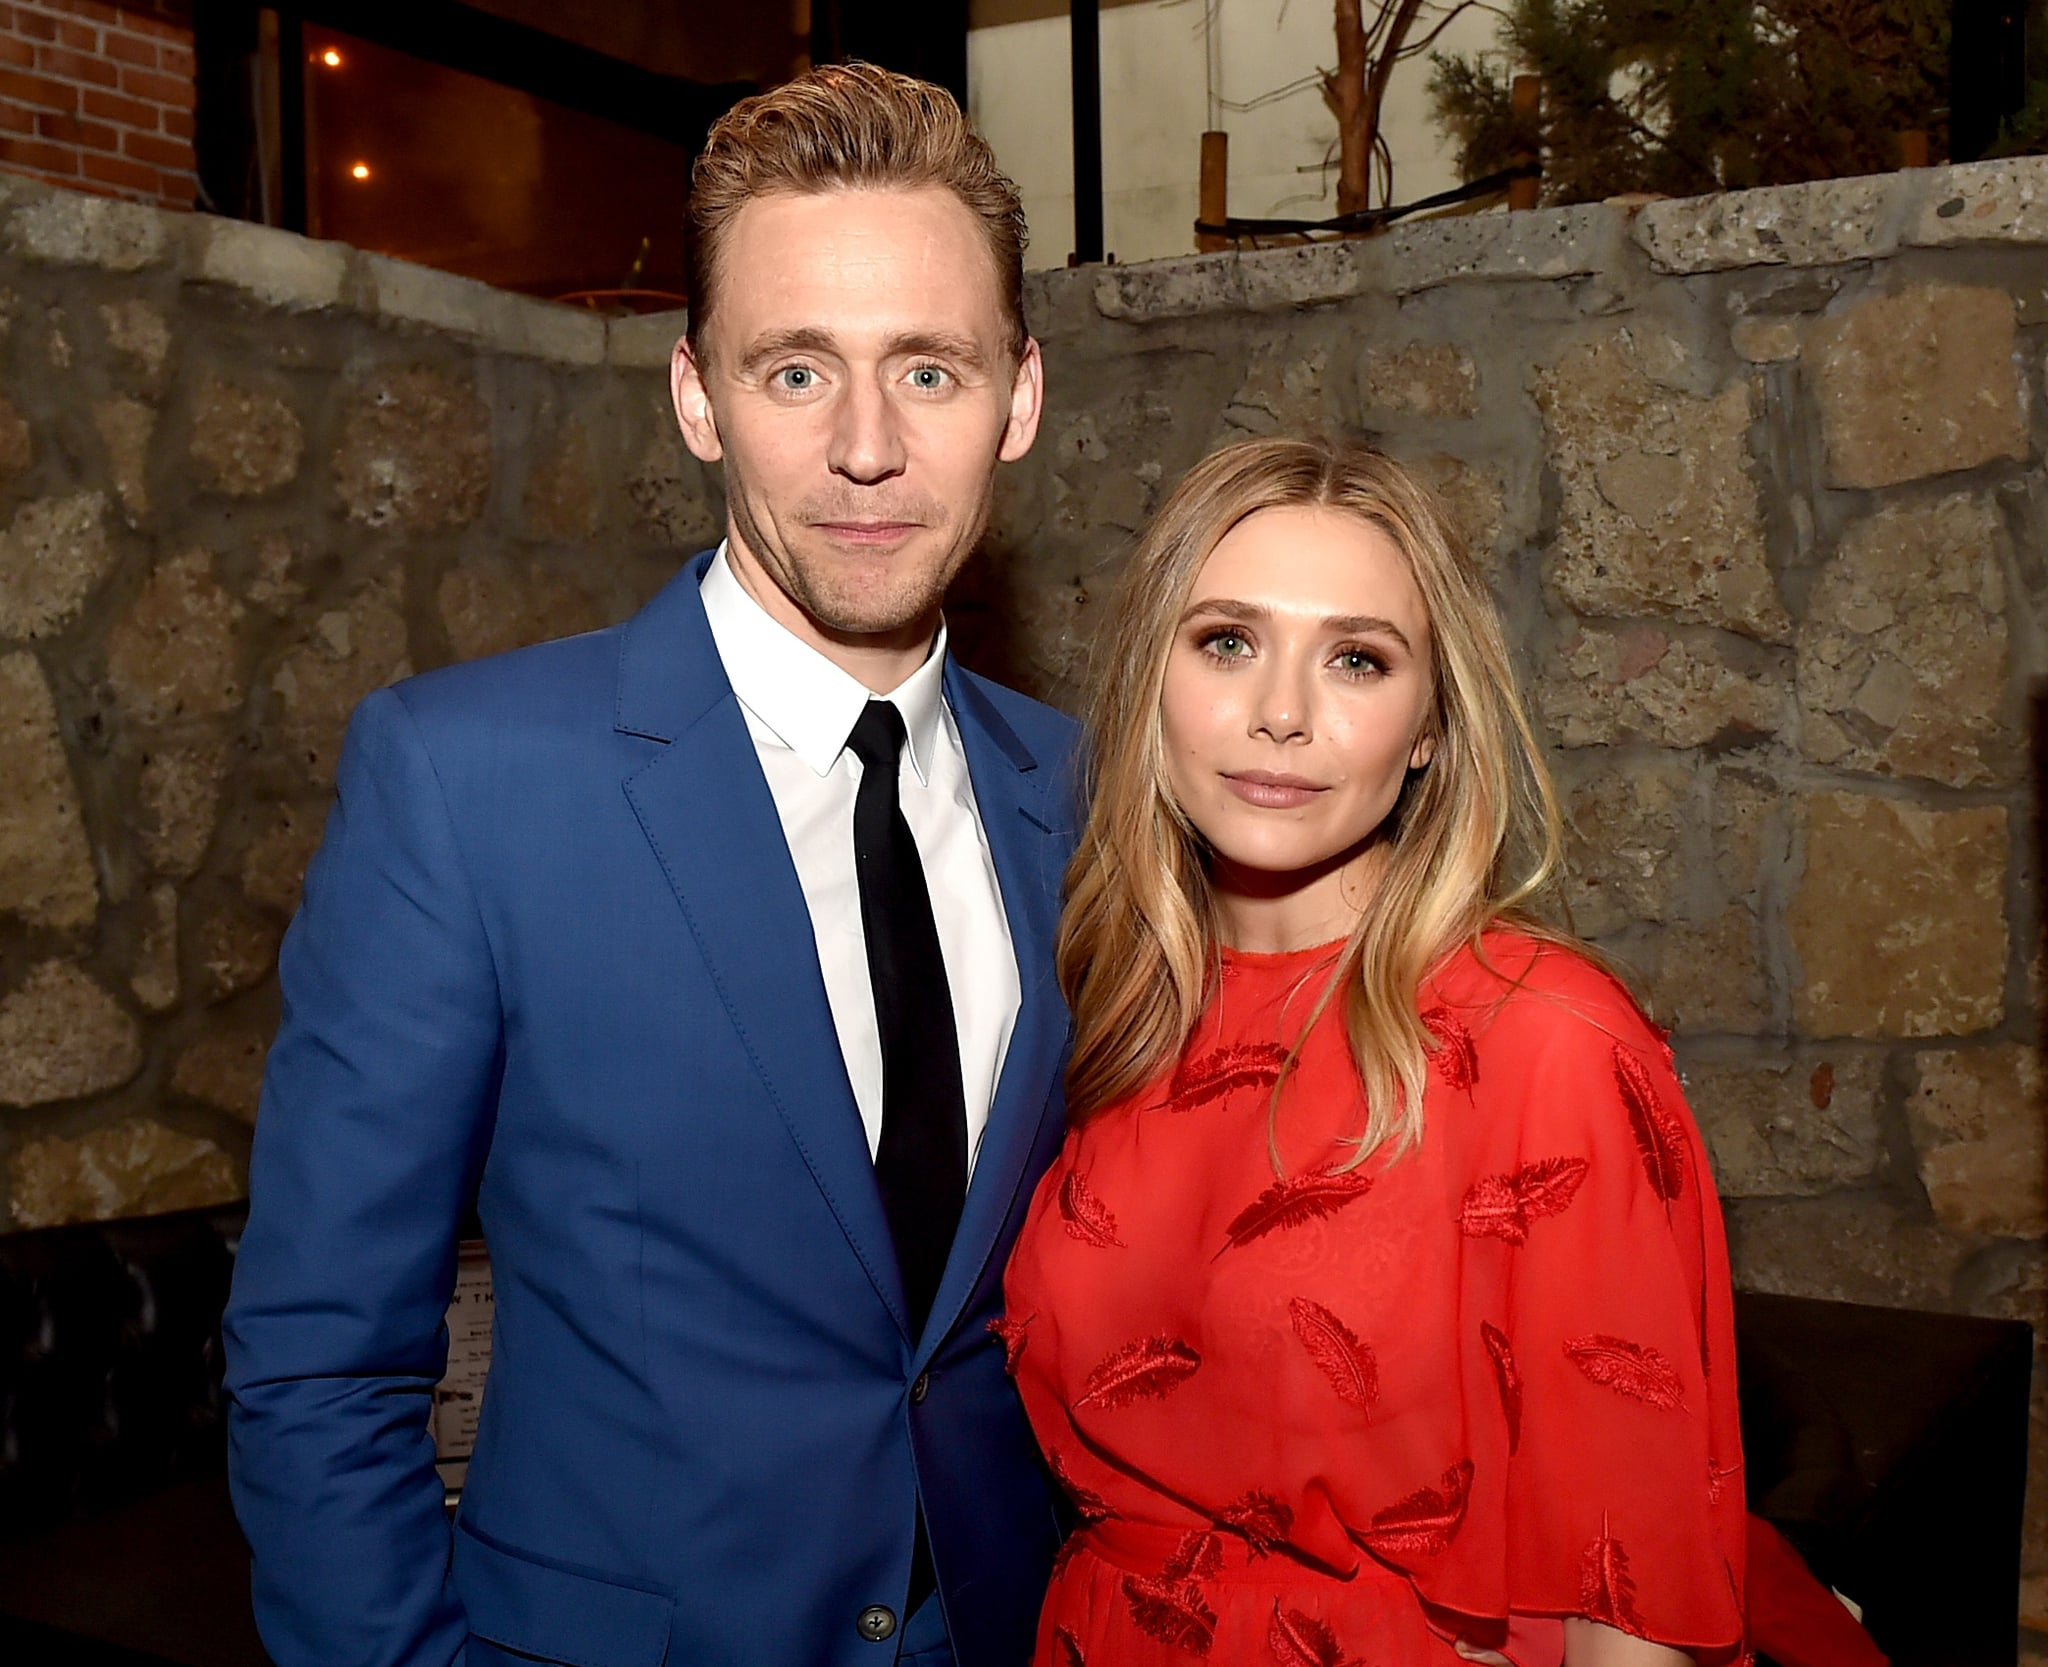 LOS ANGELES, CA - MARCH 22:  Actors Tom Hiddleston (L) and Elizabeth Olsen pose at the after party for the premiere of Sony Pictures Classic's